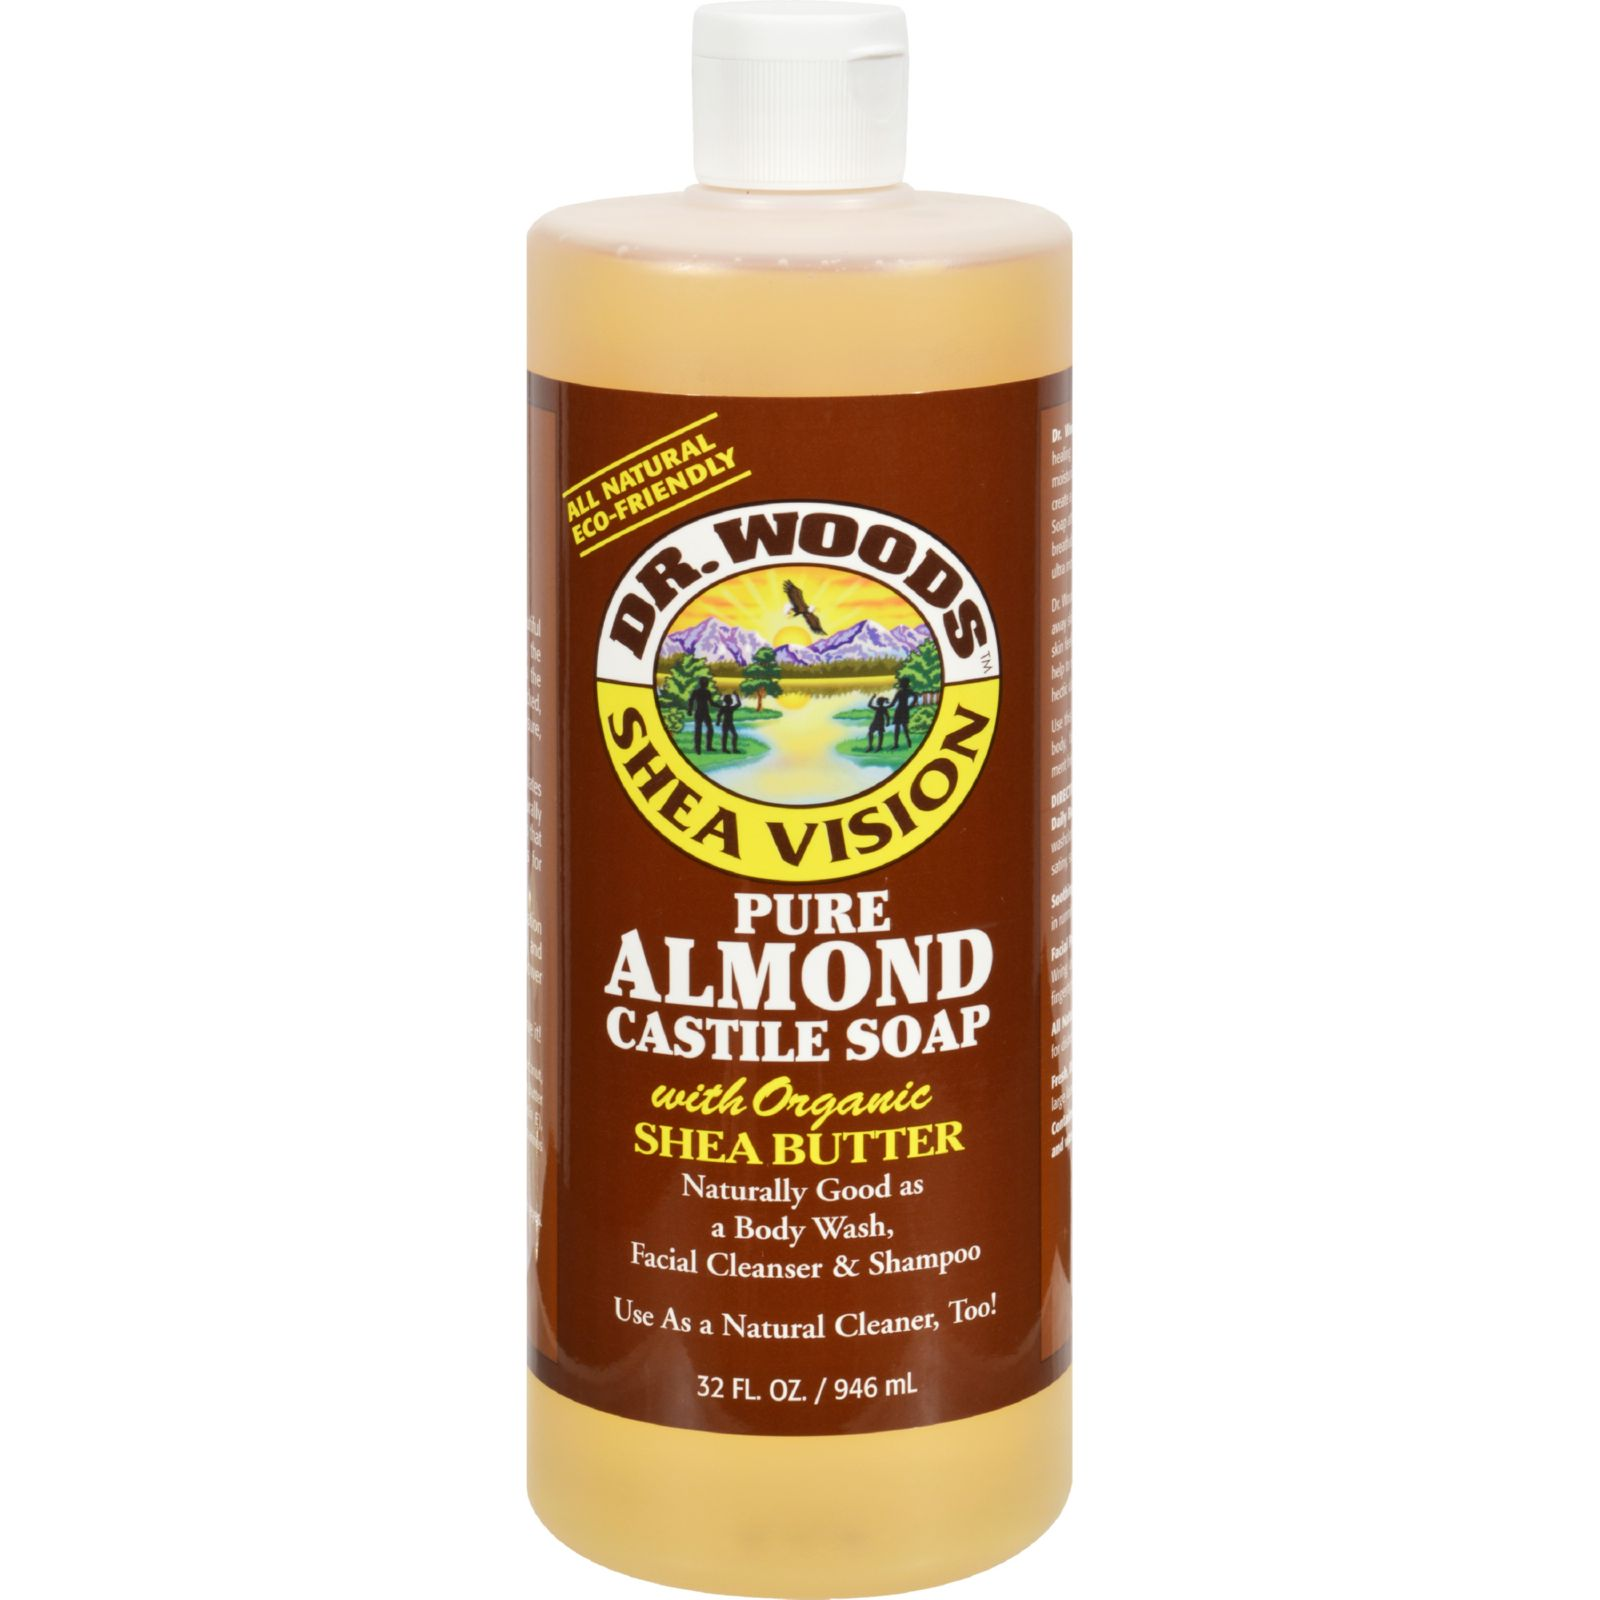 Dr. Woods Shea Vision Pure Castile Soap with Organic Shea...